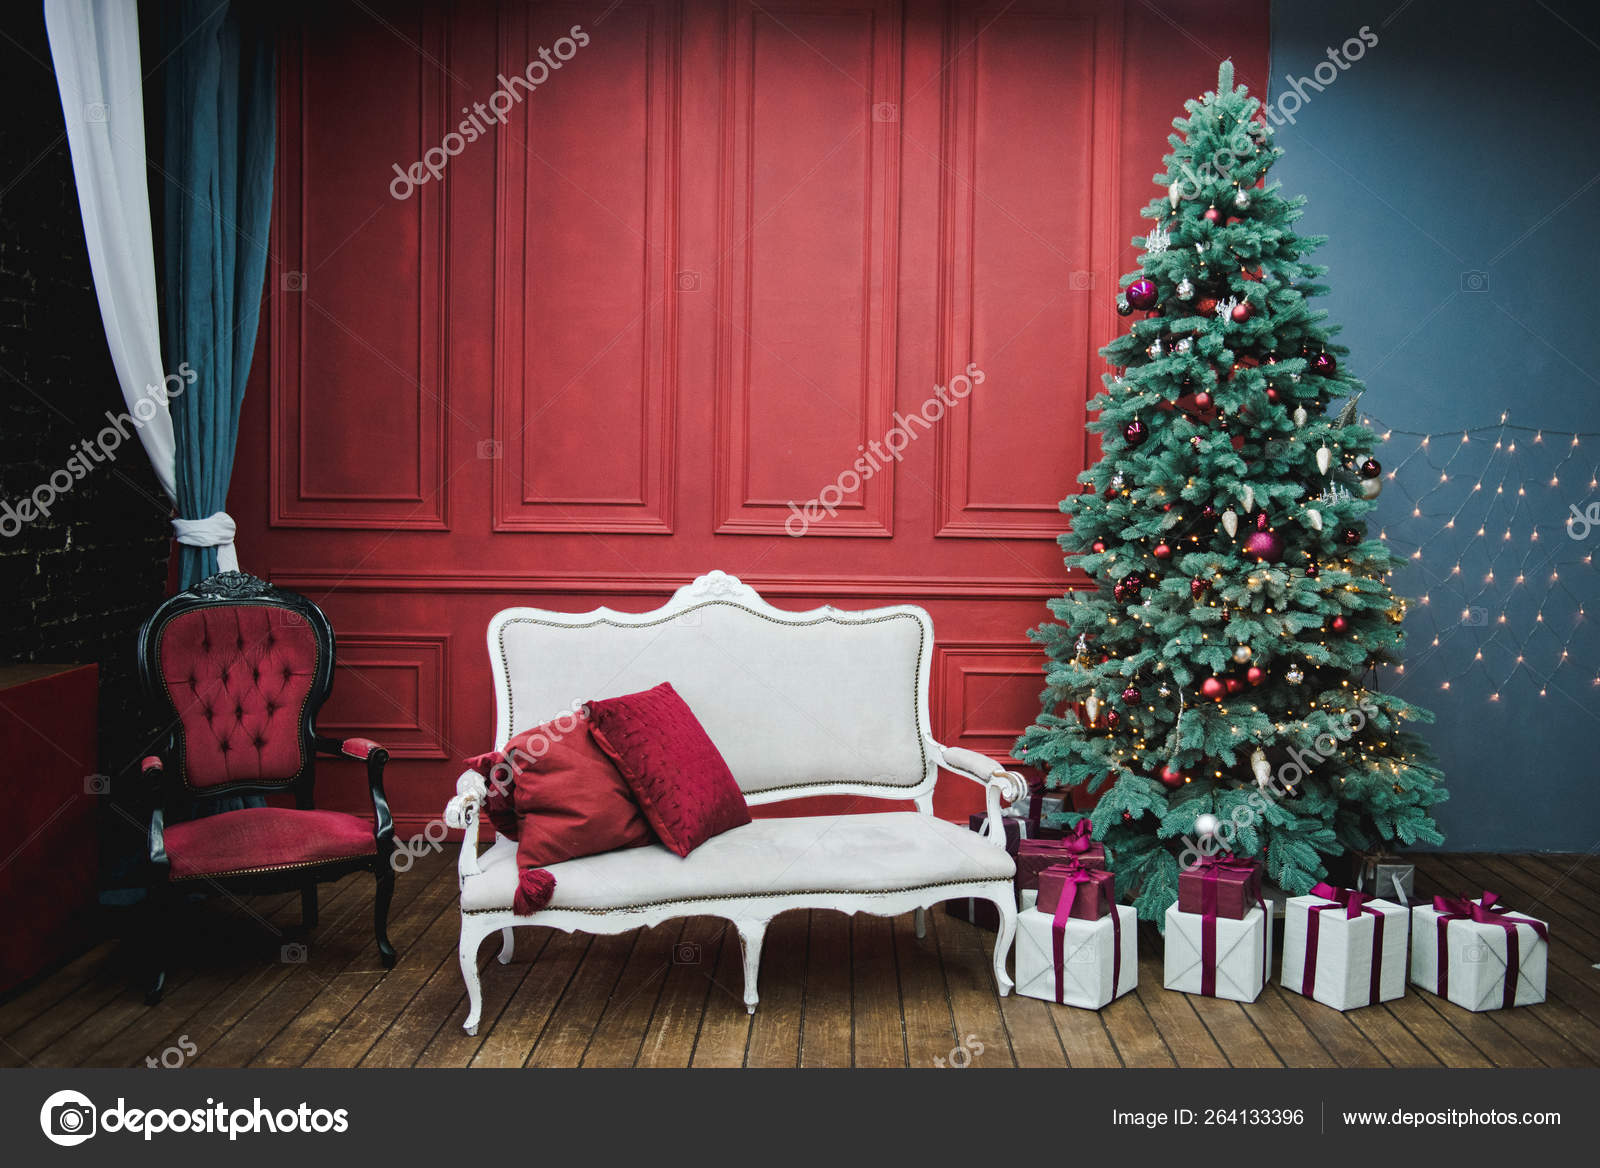 depositphotos stock photo beautiful new year decorated classic